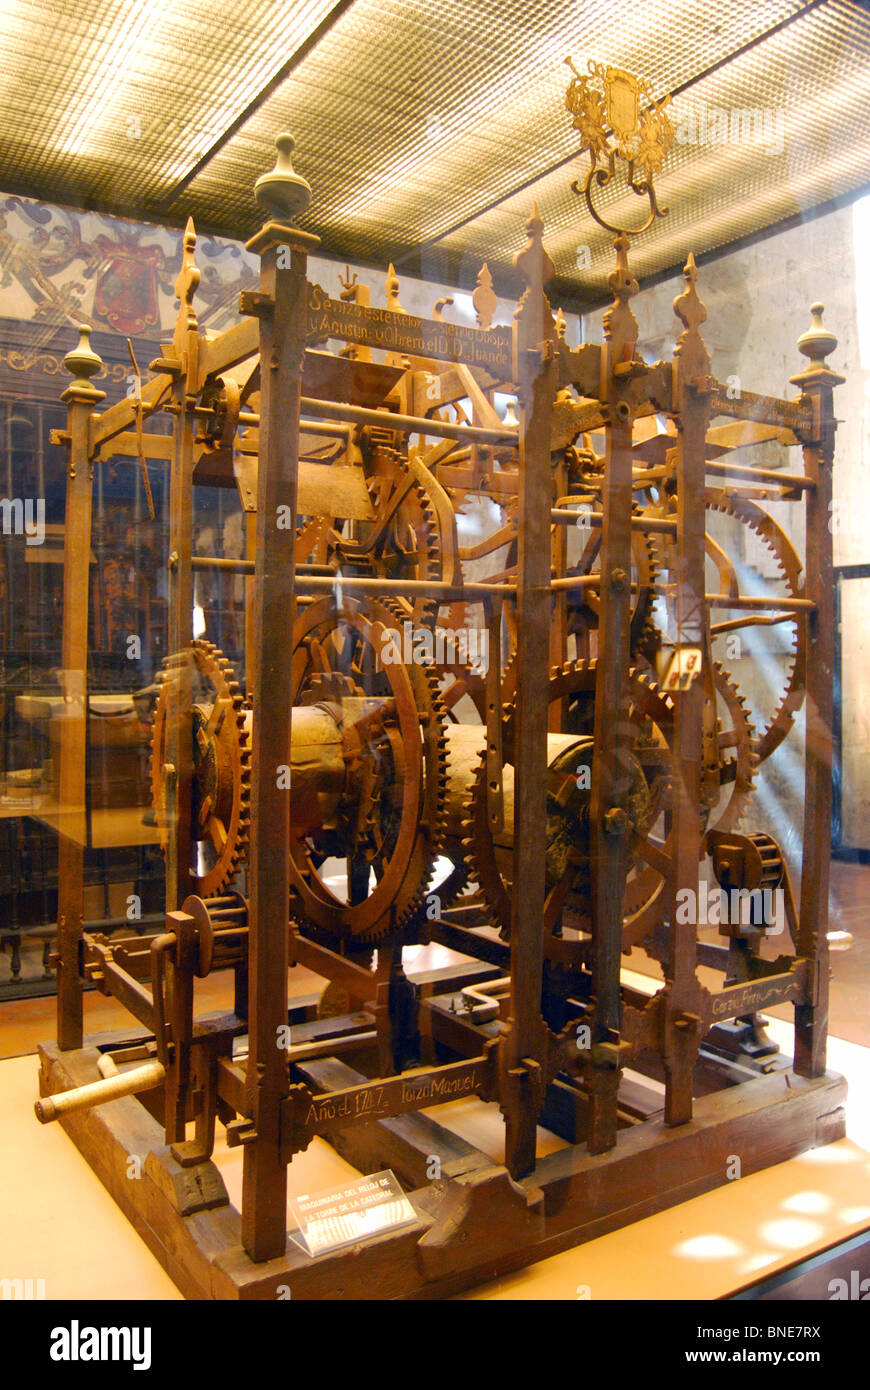 Geared machine inside the Mezquita, Cordoba, Cordoba Province, Andalucia, Spain, Western Europe. - Stock Image